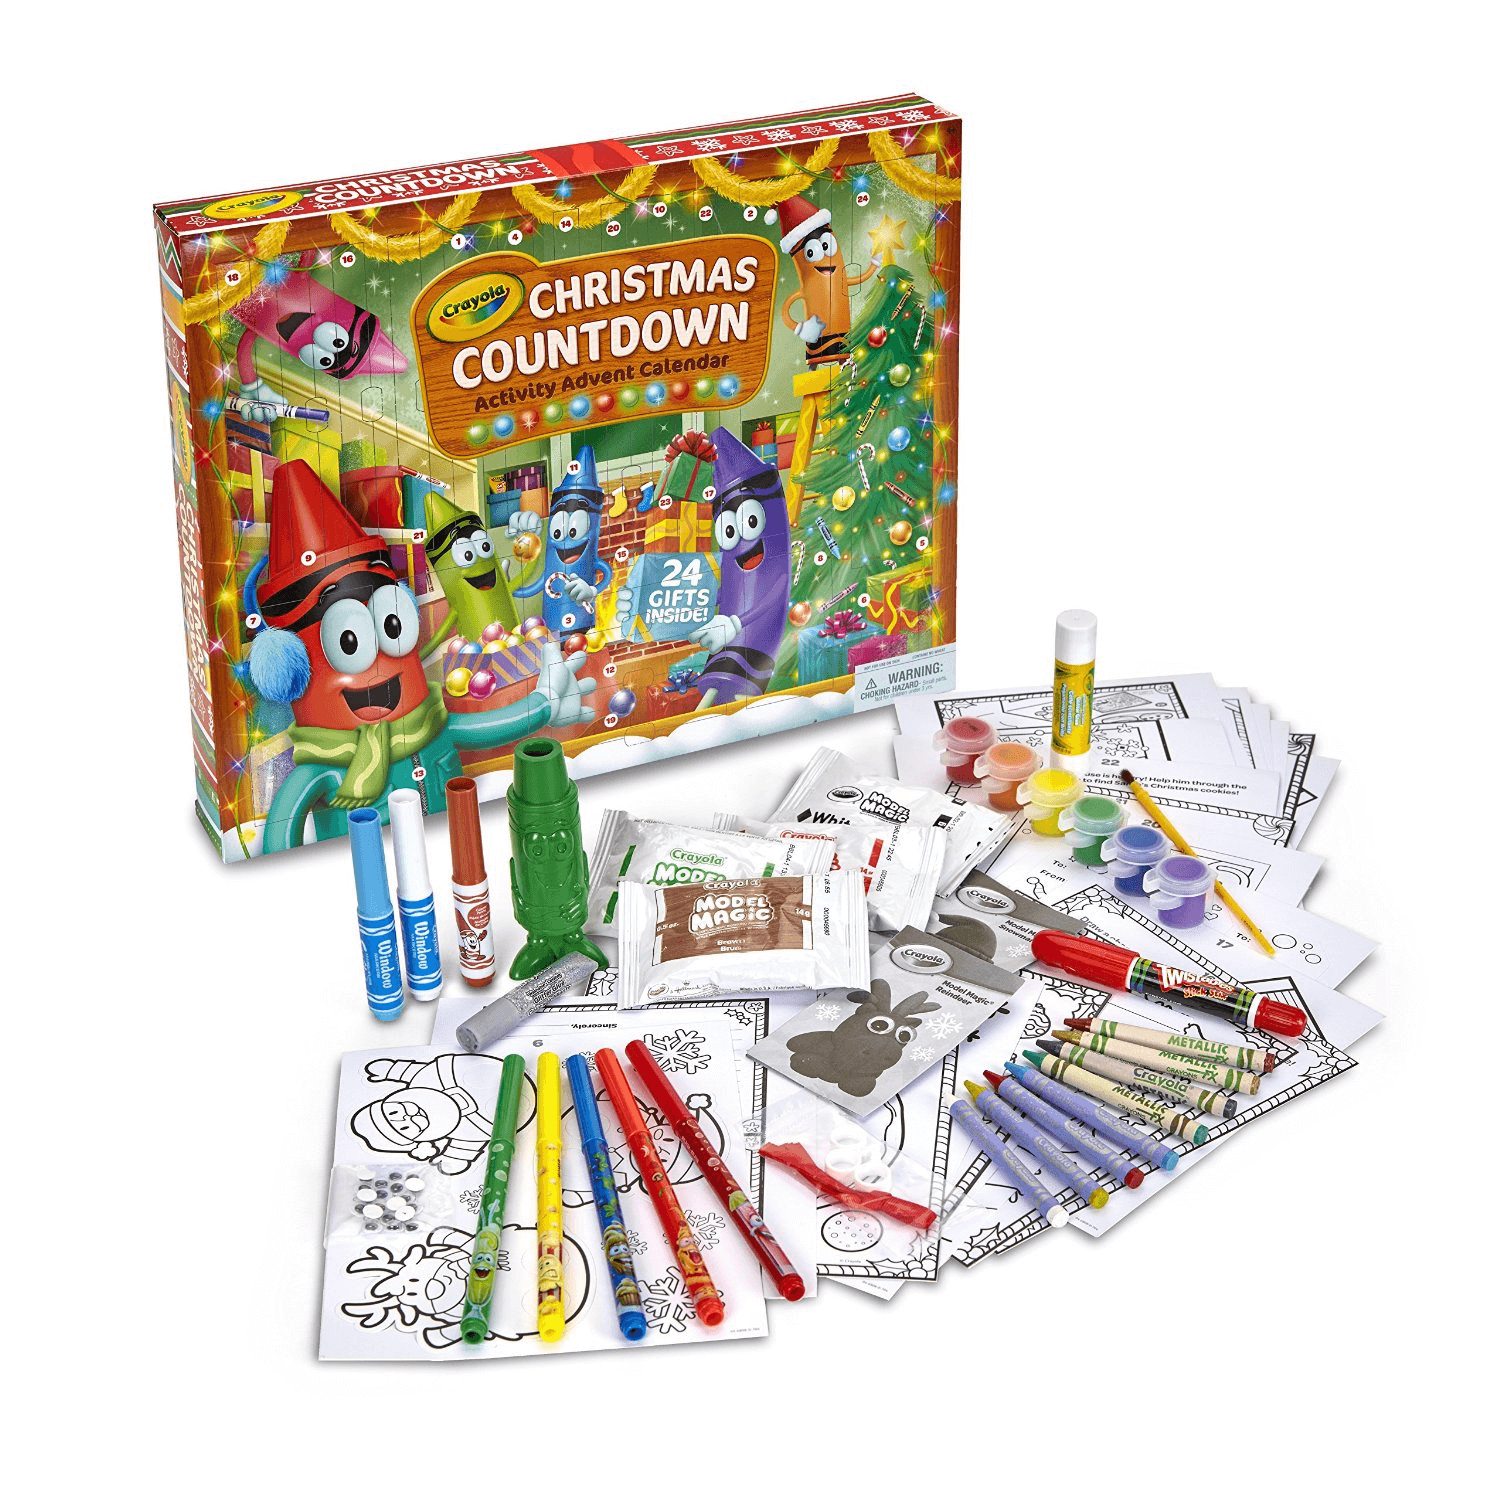 Crayola Christmas Countdown Activity Advent Calendar 30% Off TODAY ONLY!